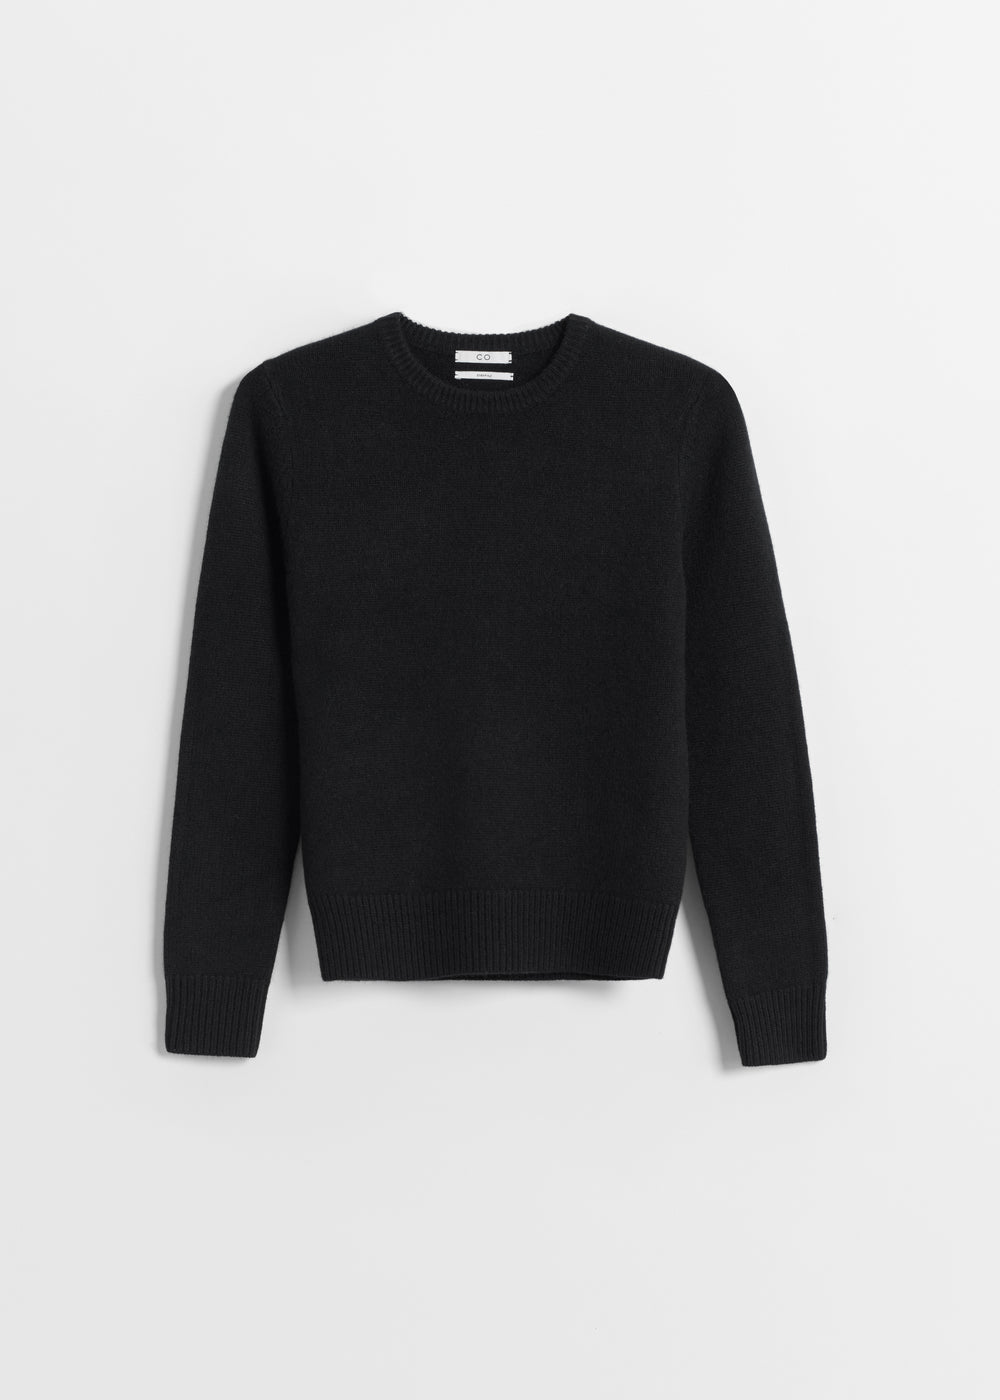 Classic Crew Neck in Cashmere - Light Grey in Black by Co Collections